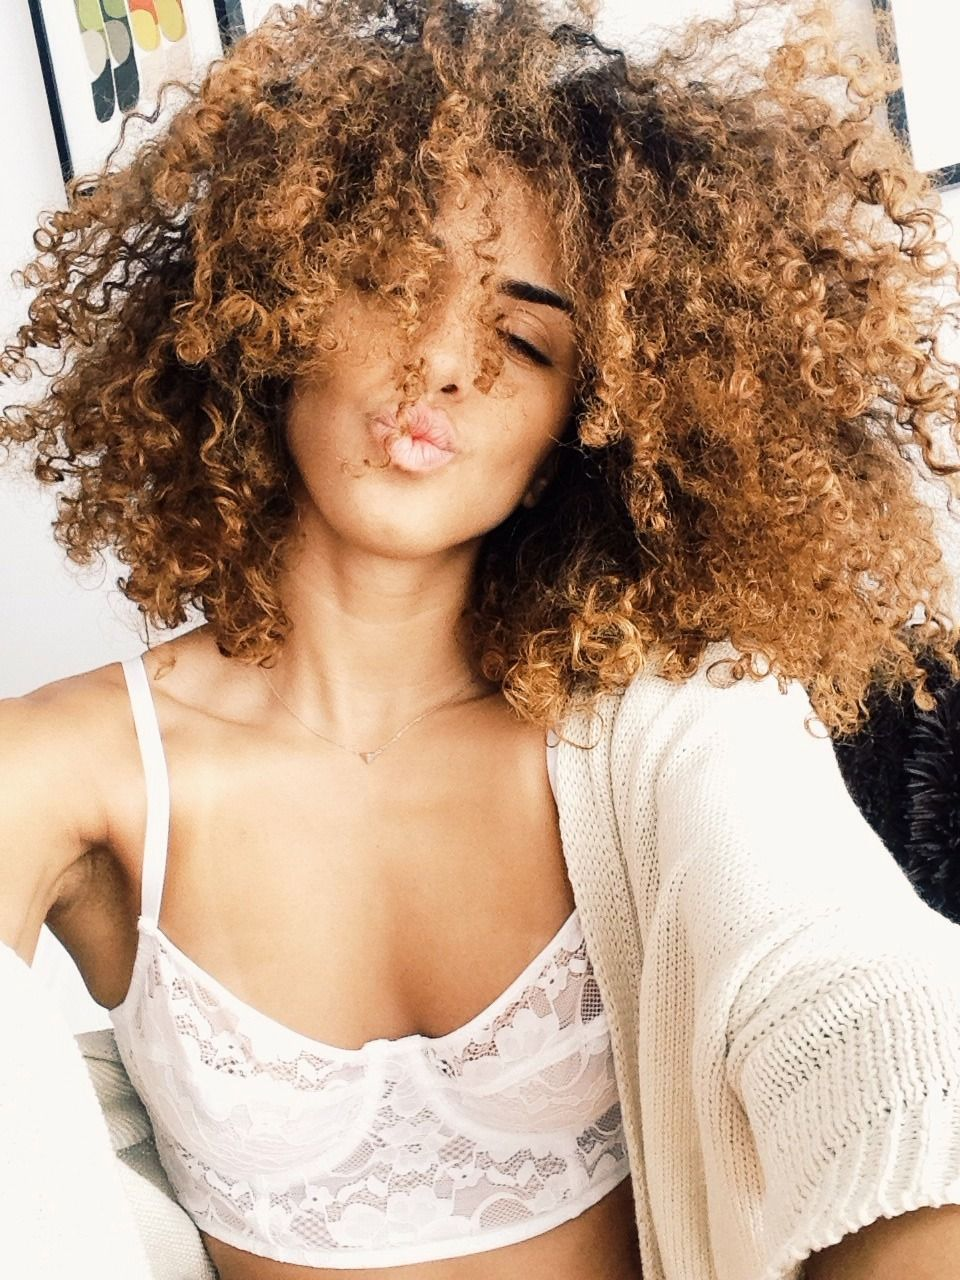 Amazing natural hair! •Visit www.styleopath.com for a chance to win £200 worth of luxury afro hair products. ~Visit: http://styleopath.com